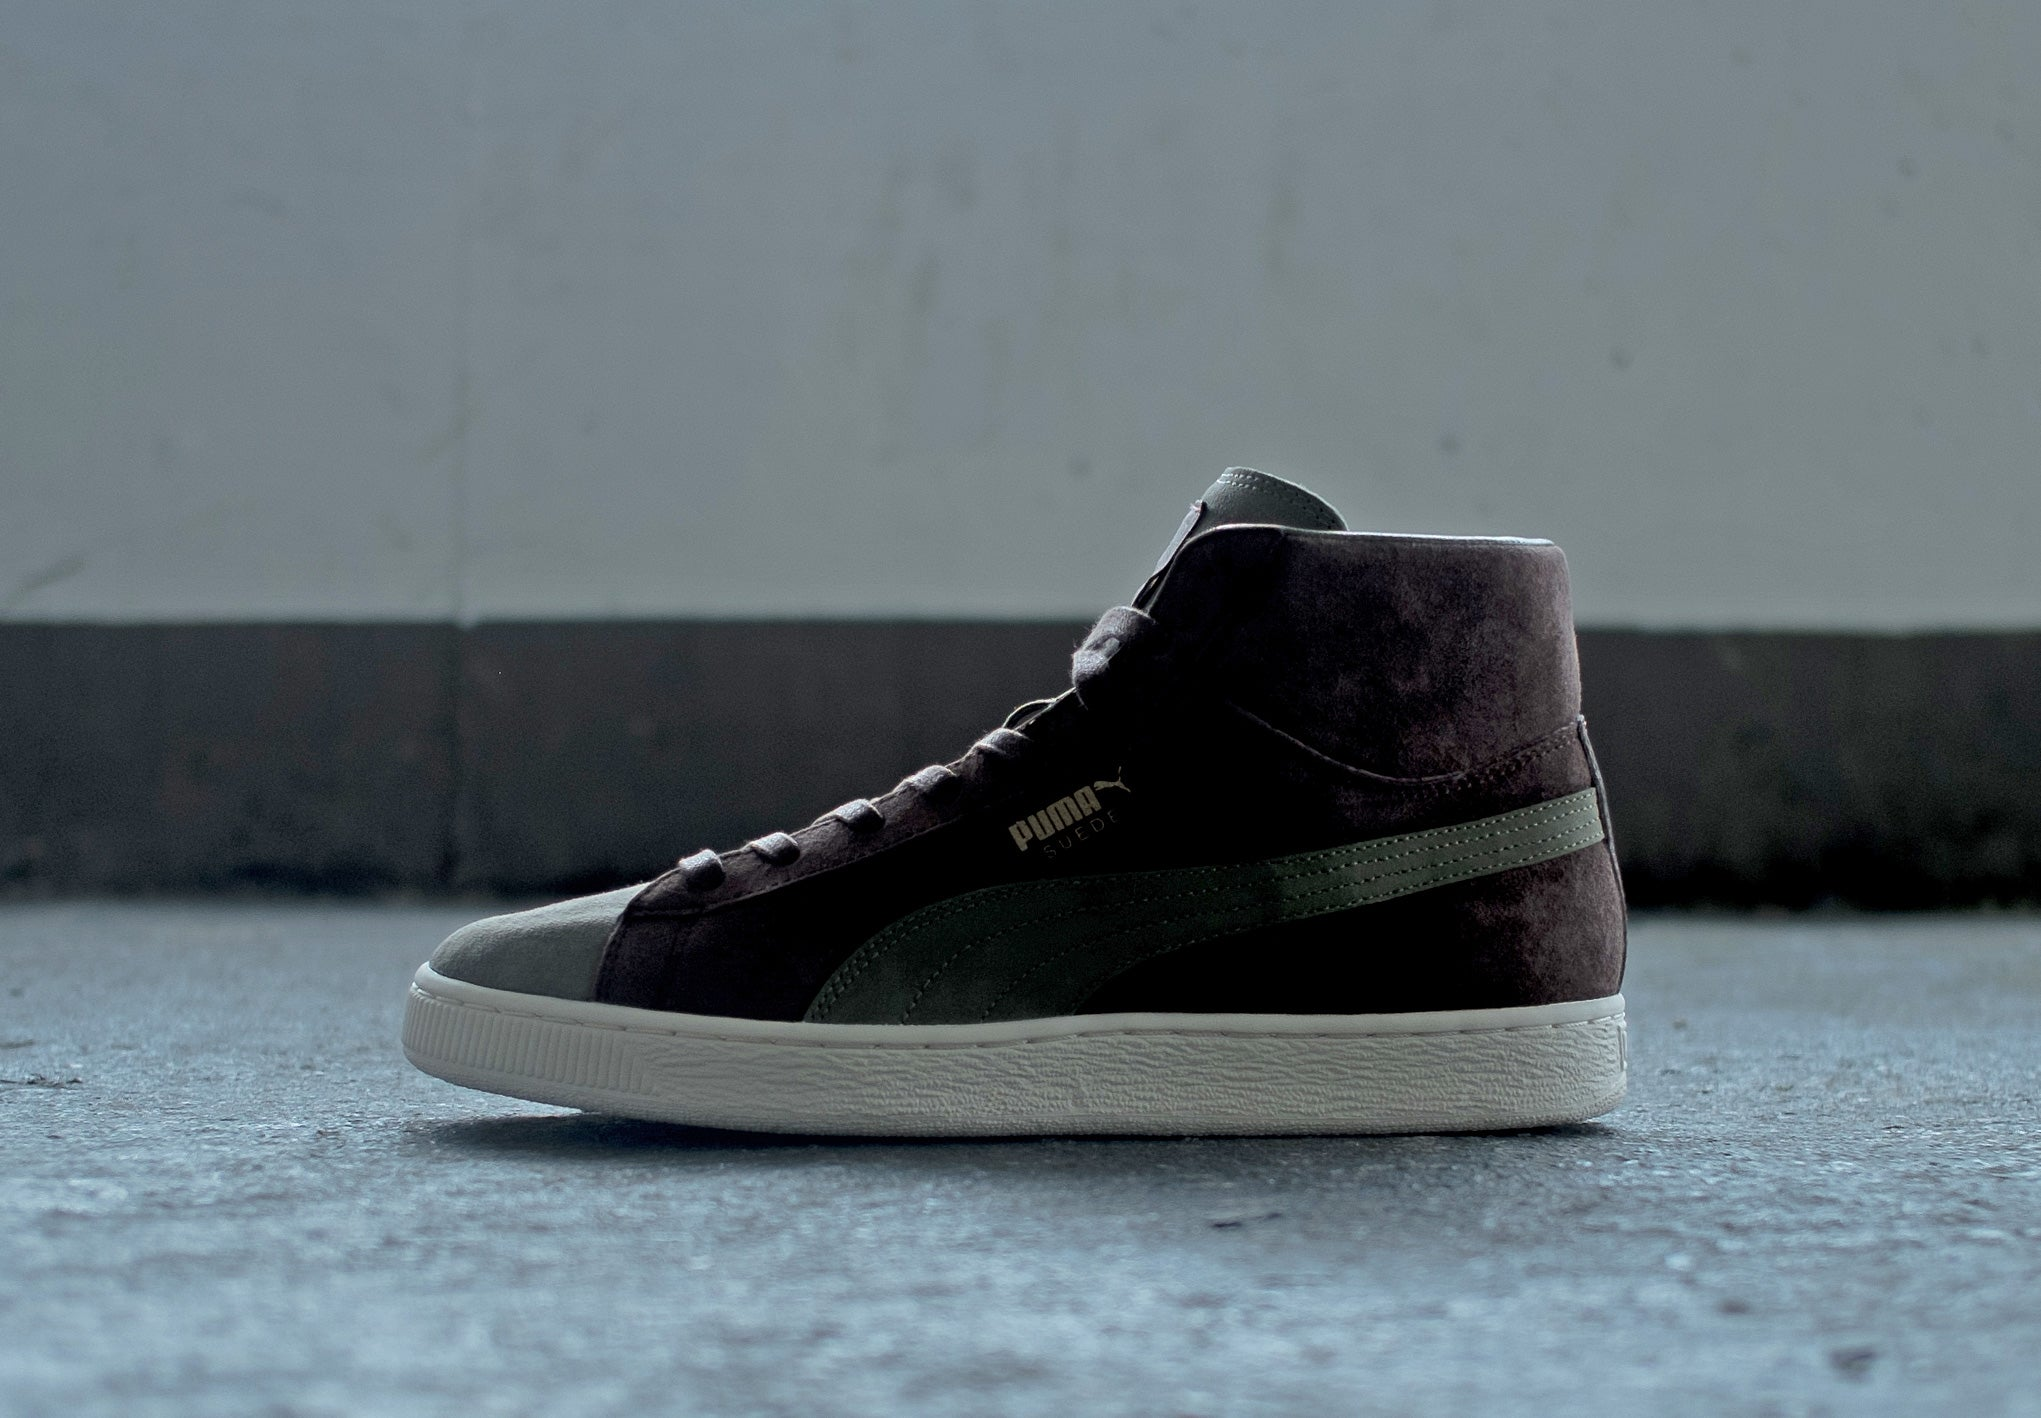 outlet store 7ba4a 362d2 PUMA x Bobbito Garcia Suede Mid and Clyde at The Chimp Store